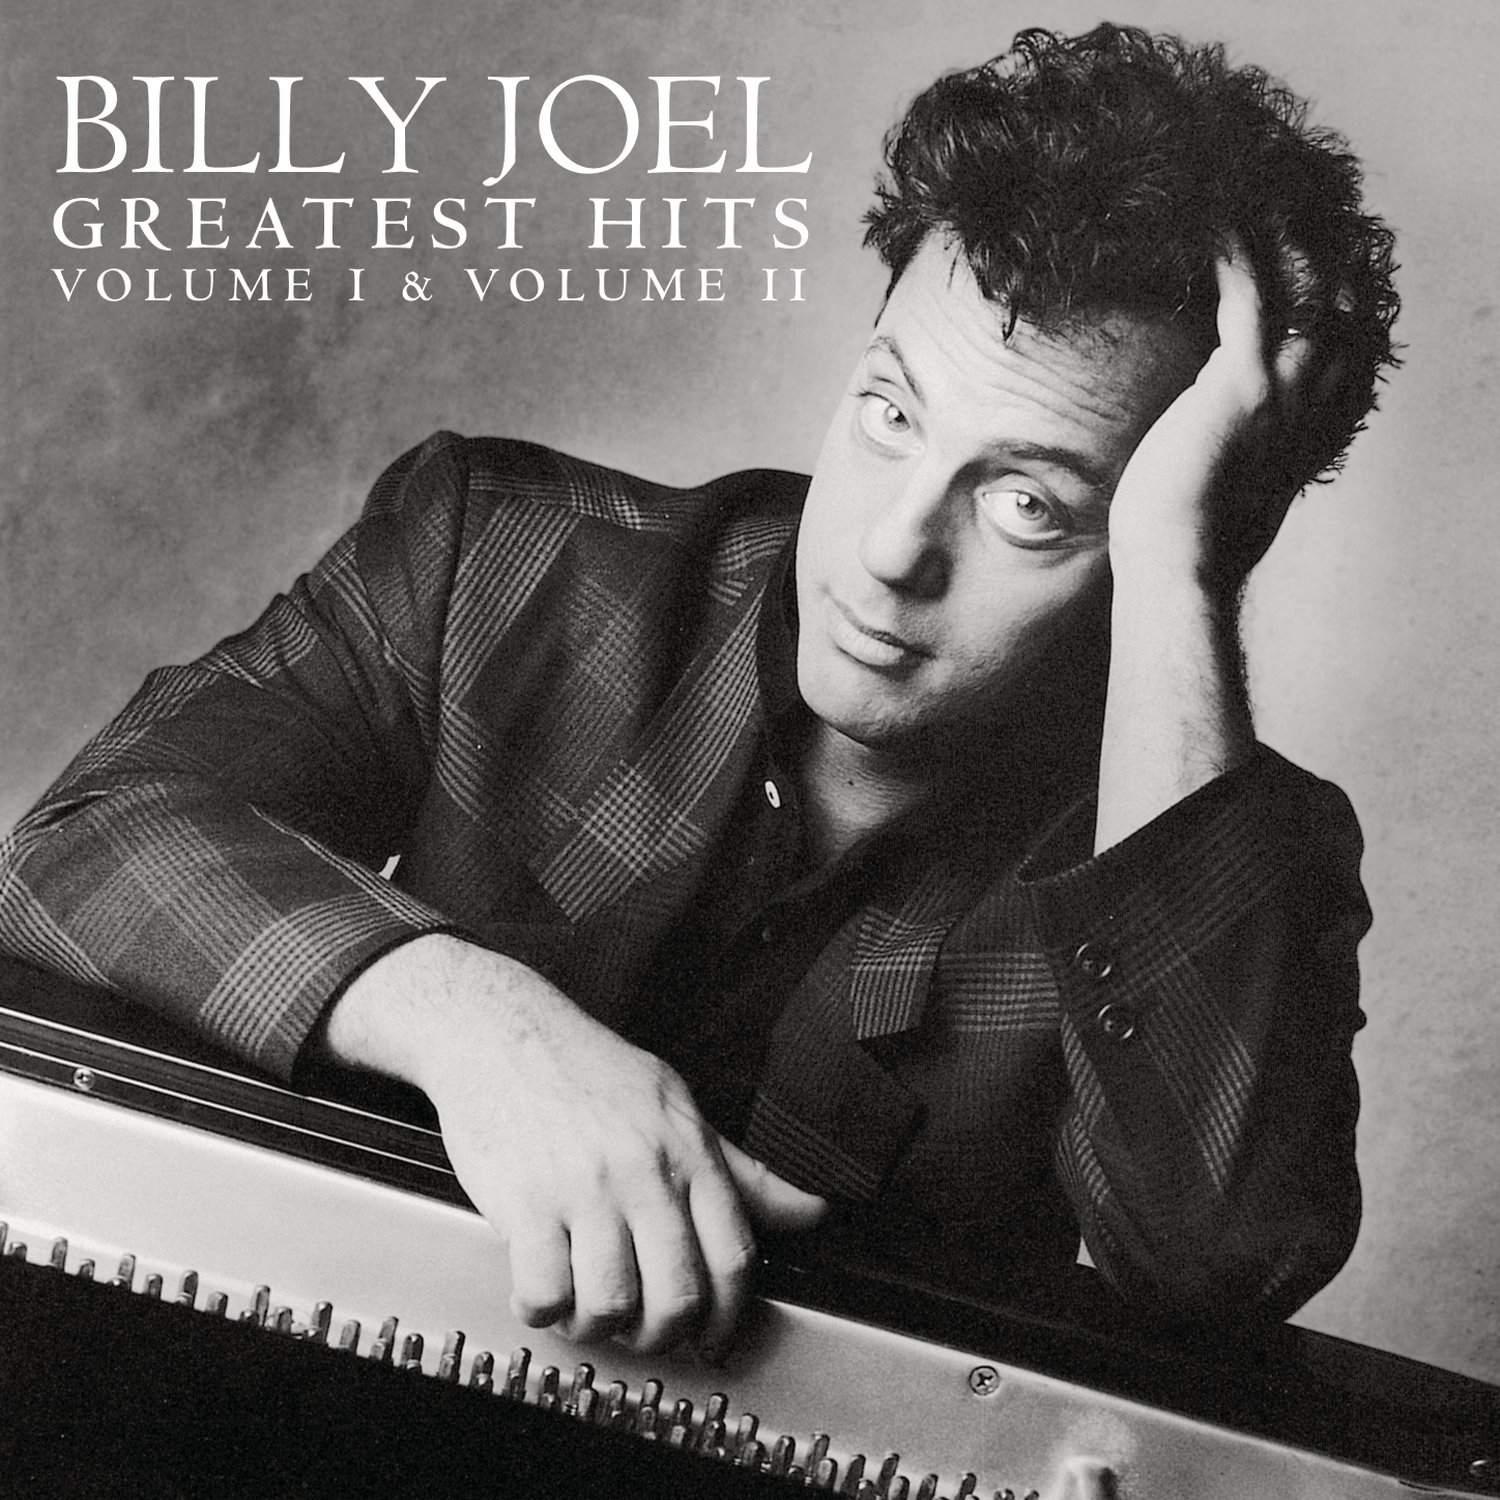 Off The Record… A Conversation With Billy Joel